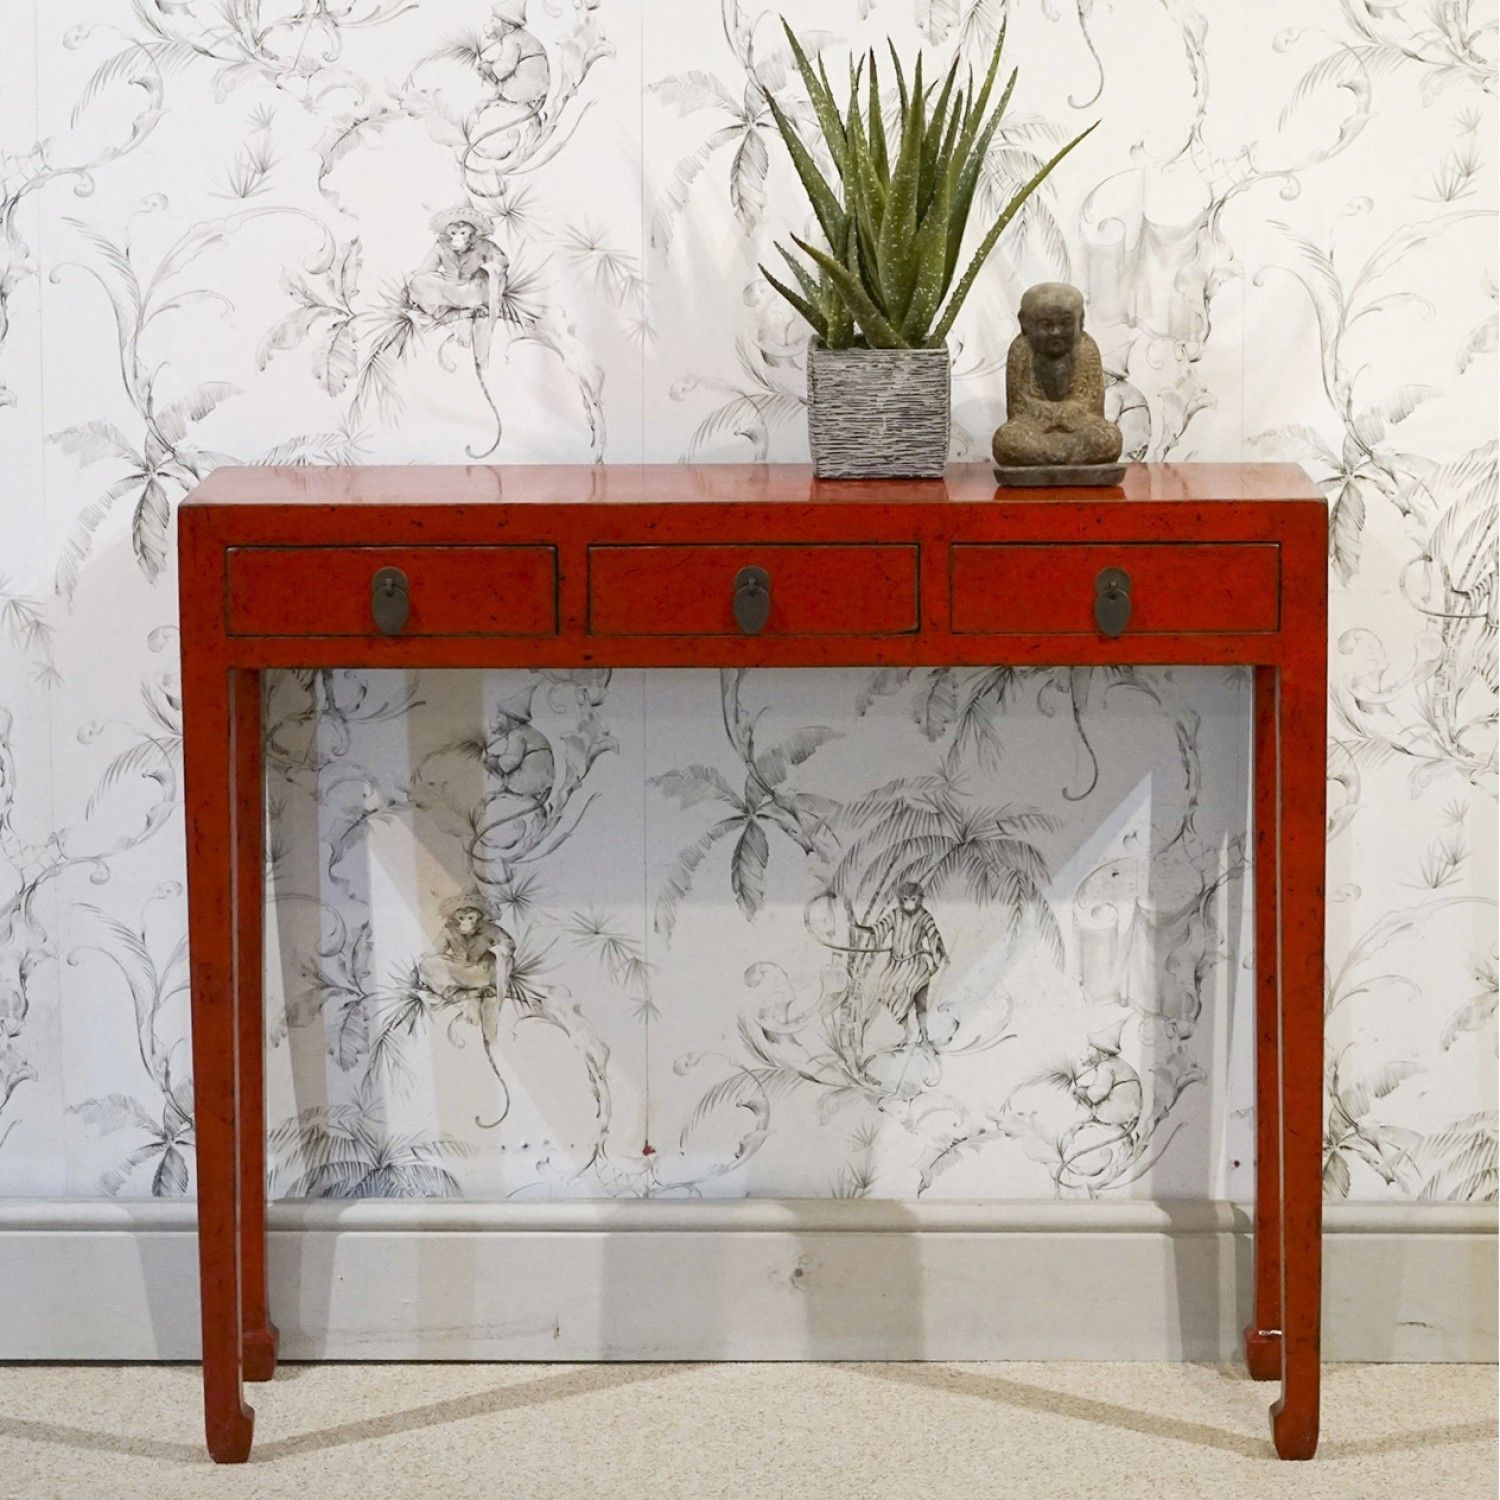 Chinese Red Console Table In 2020 Red Console Table Console Table Narrow Console Table